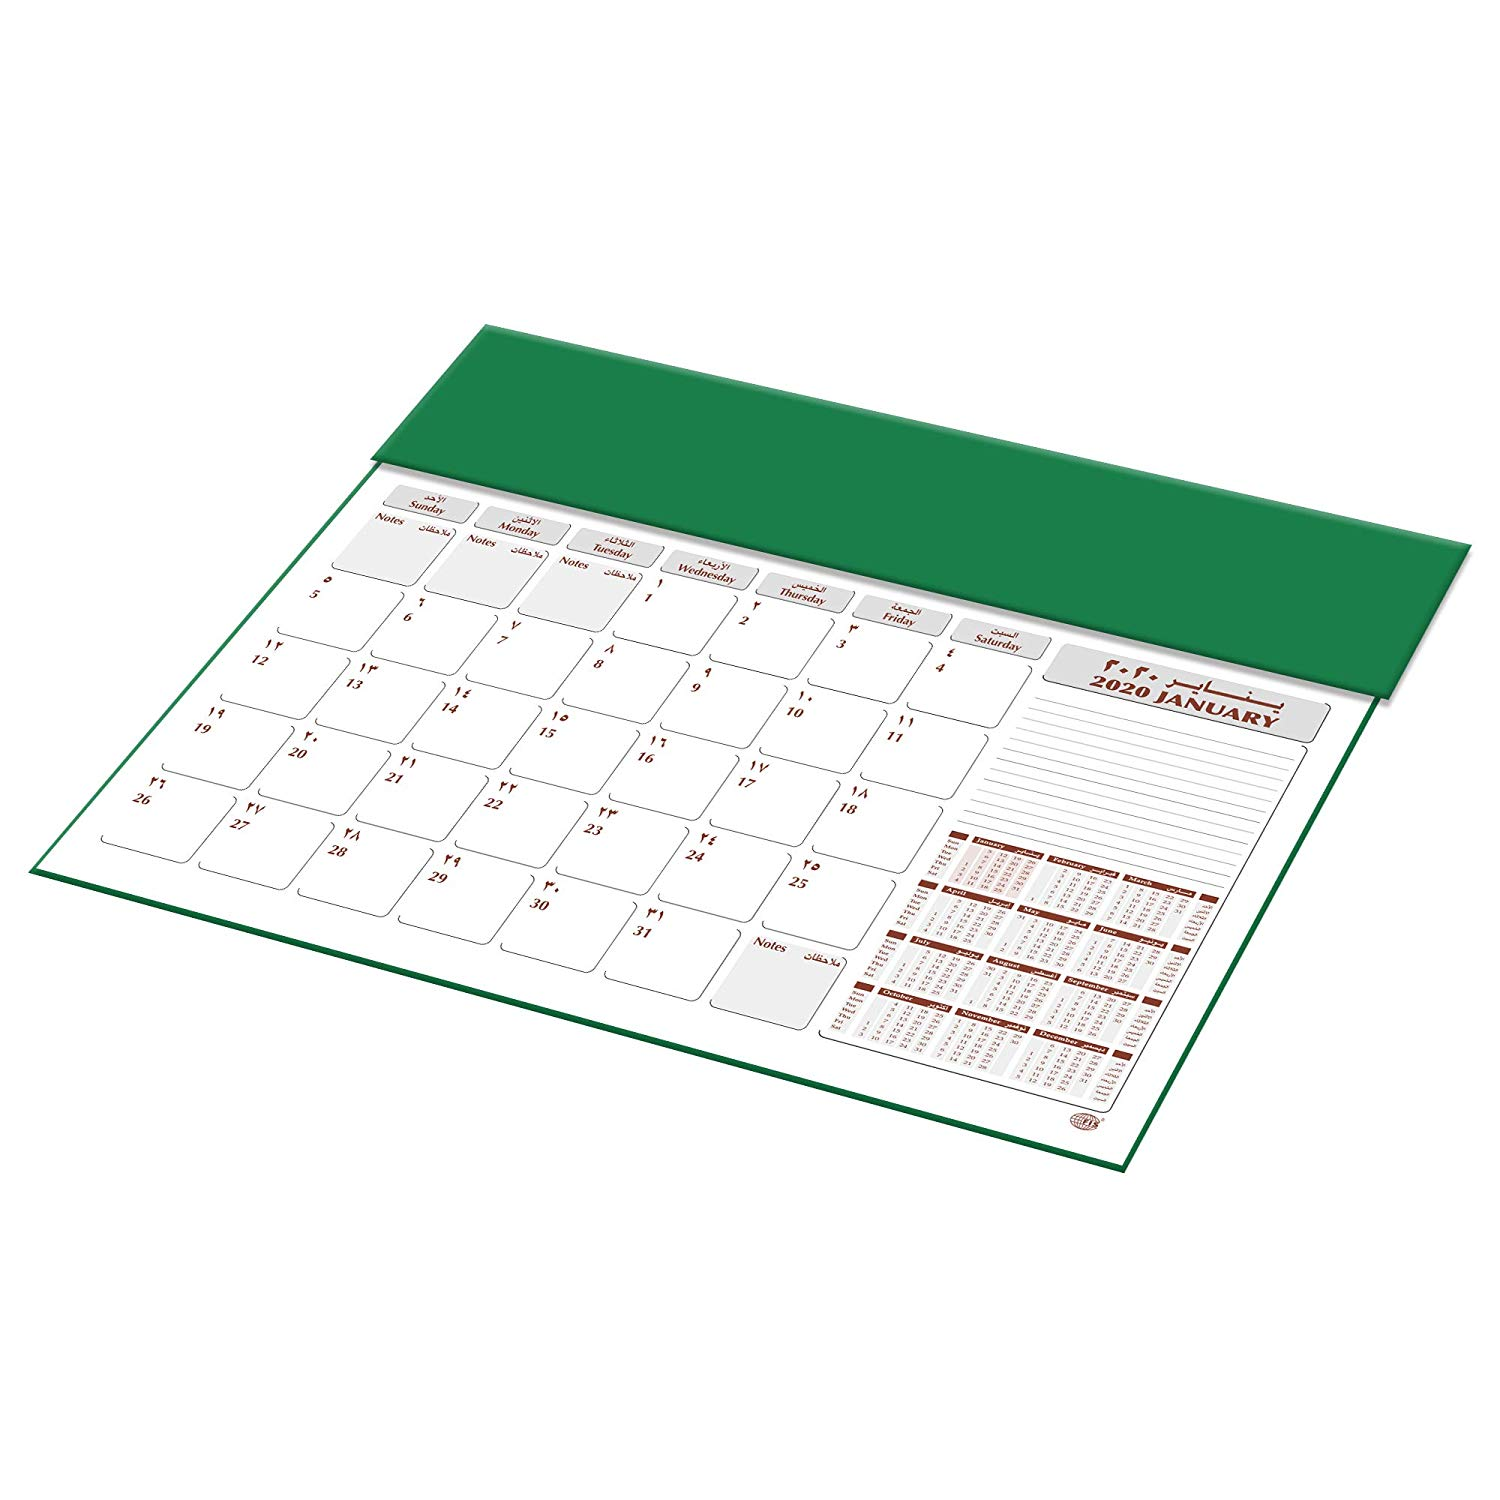 FIS FSDK2AE20GR 2020 Year Planner (Arabic/English) Italian PU w/ Desk Blotter 490x340mm - Green